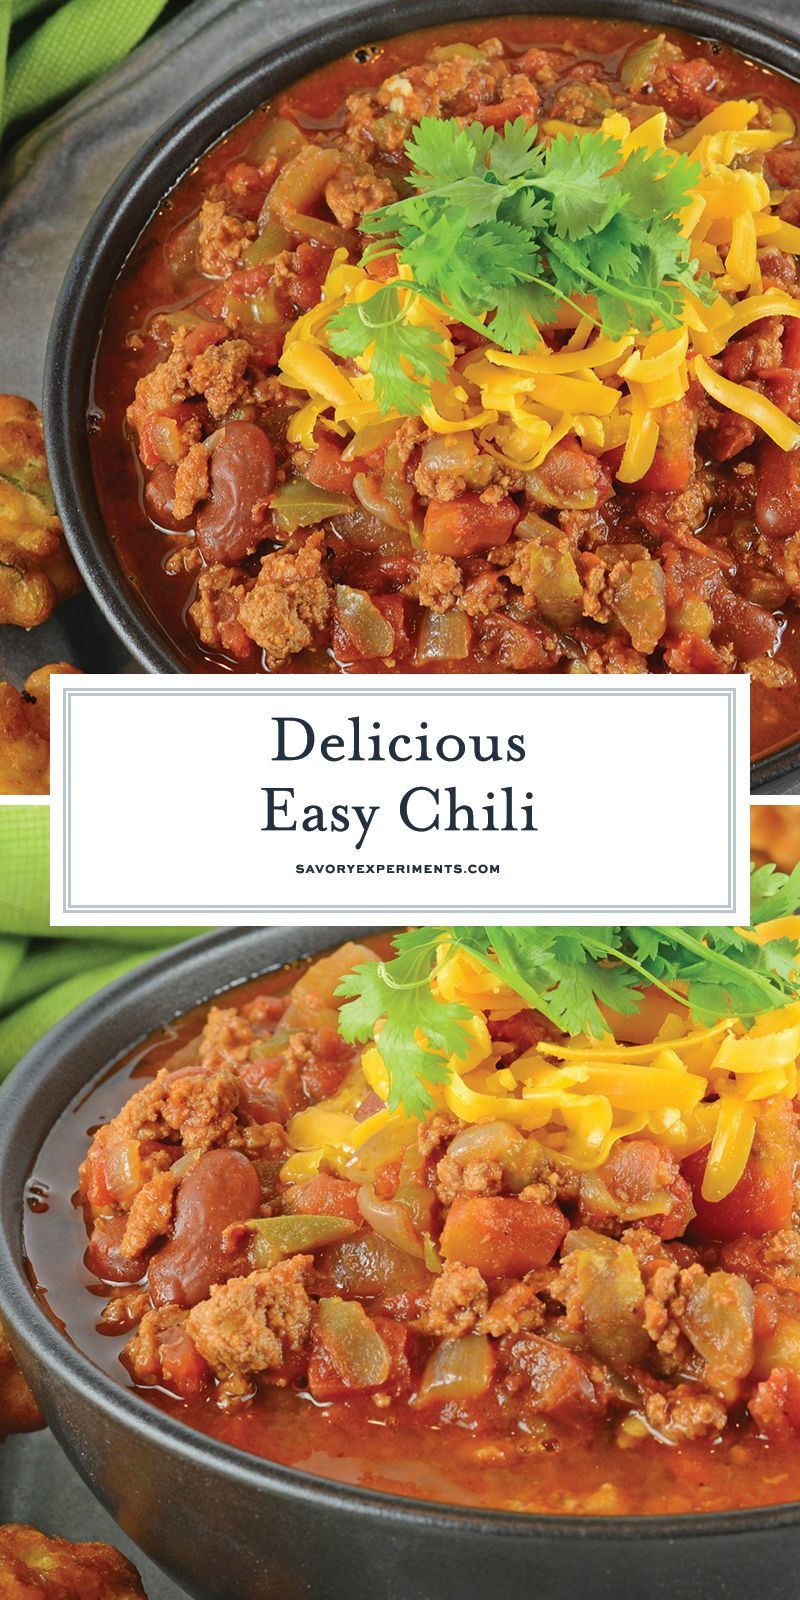 Easy Chili Is A Spicy Mix Full Of Ground Beef Italian Sausage And Vegetables But The Secret Ingred Beef Soup Recipes Spaghetti Recipes Easy Best Chili Recipe